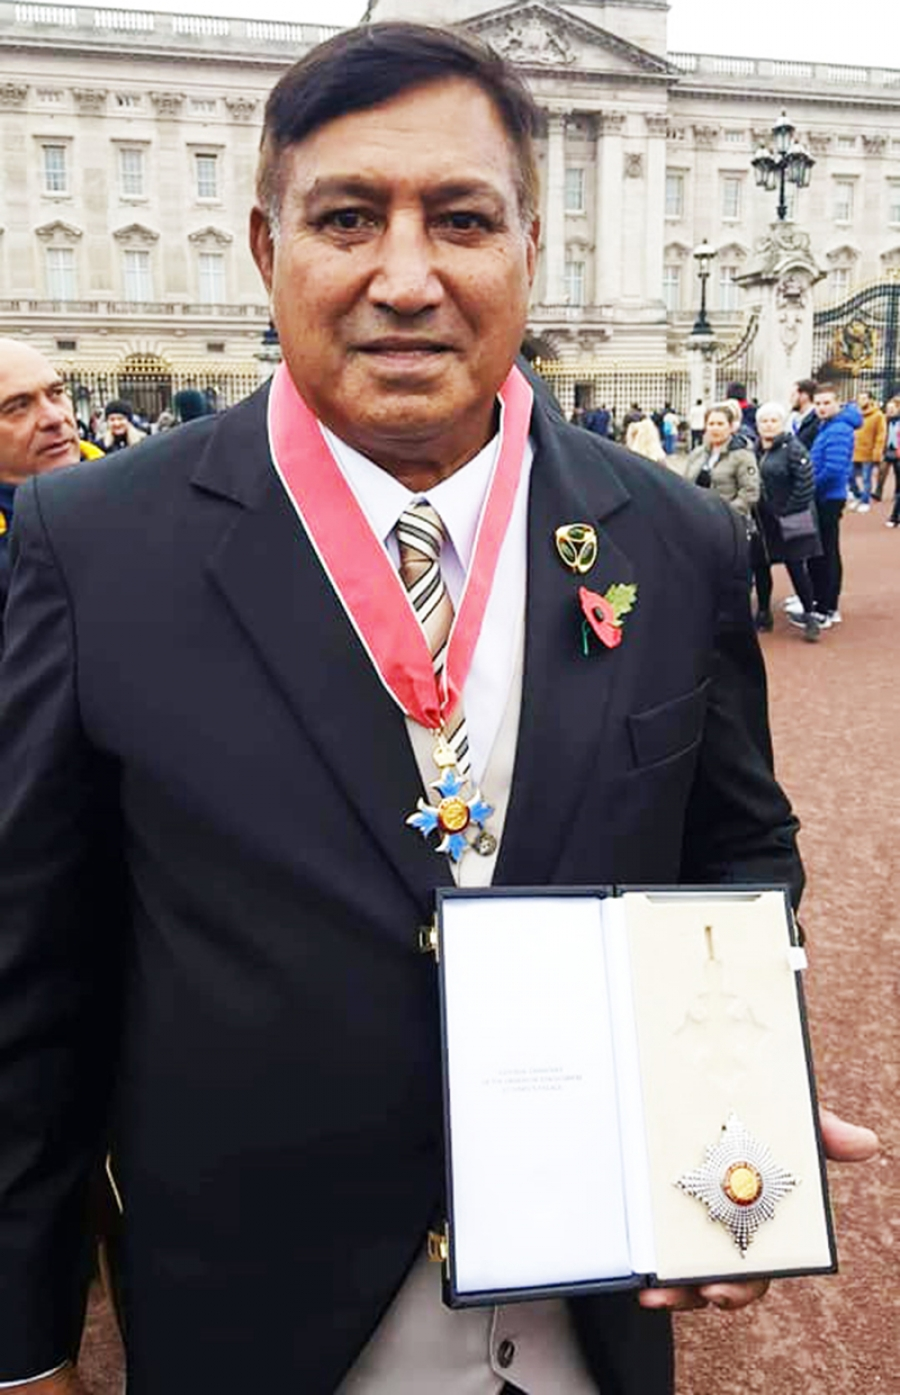 Queen's Rep reappointed